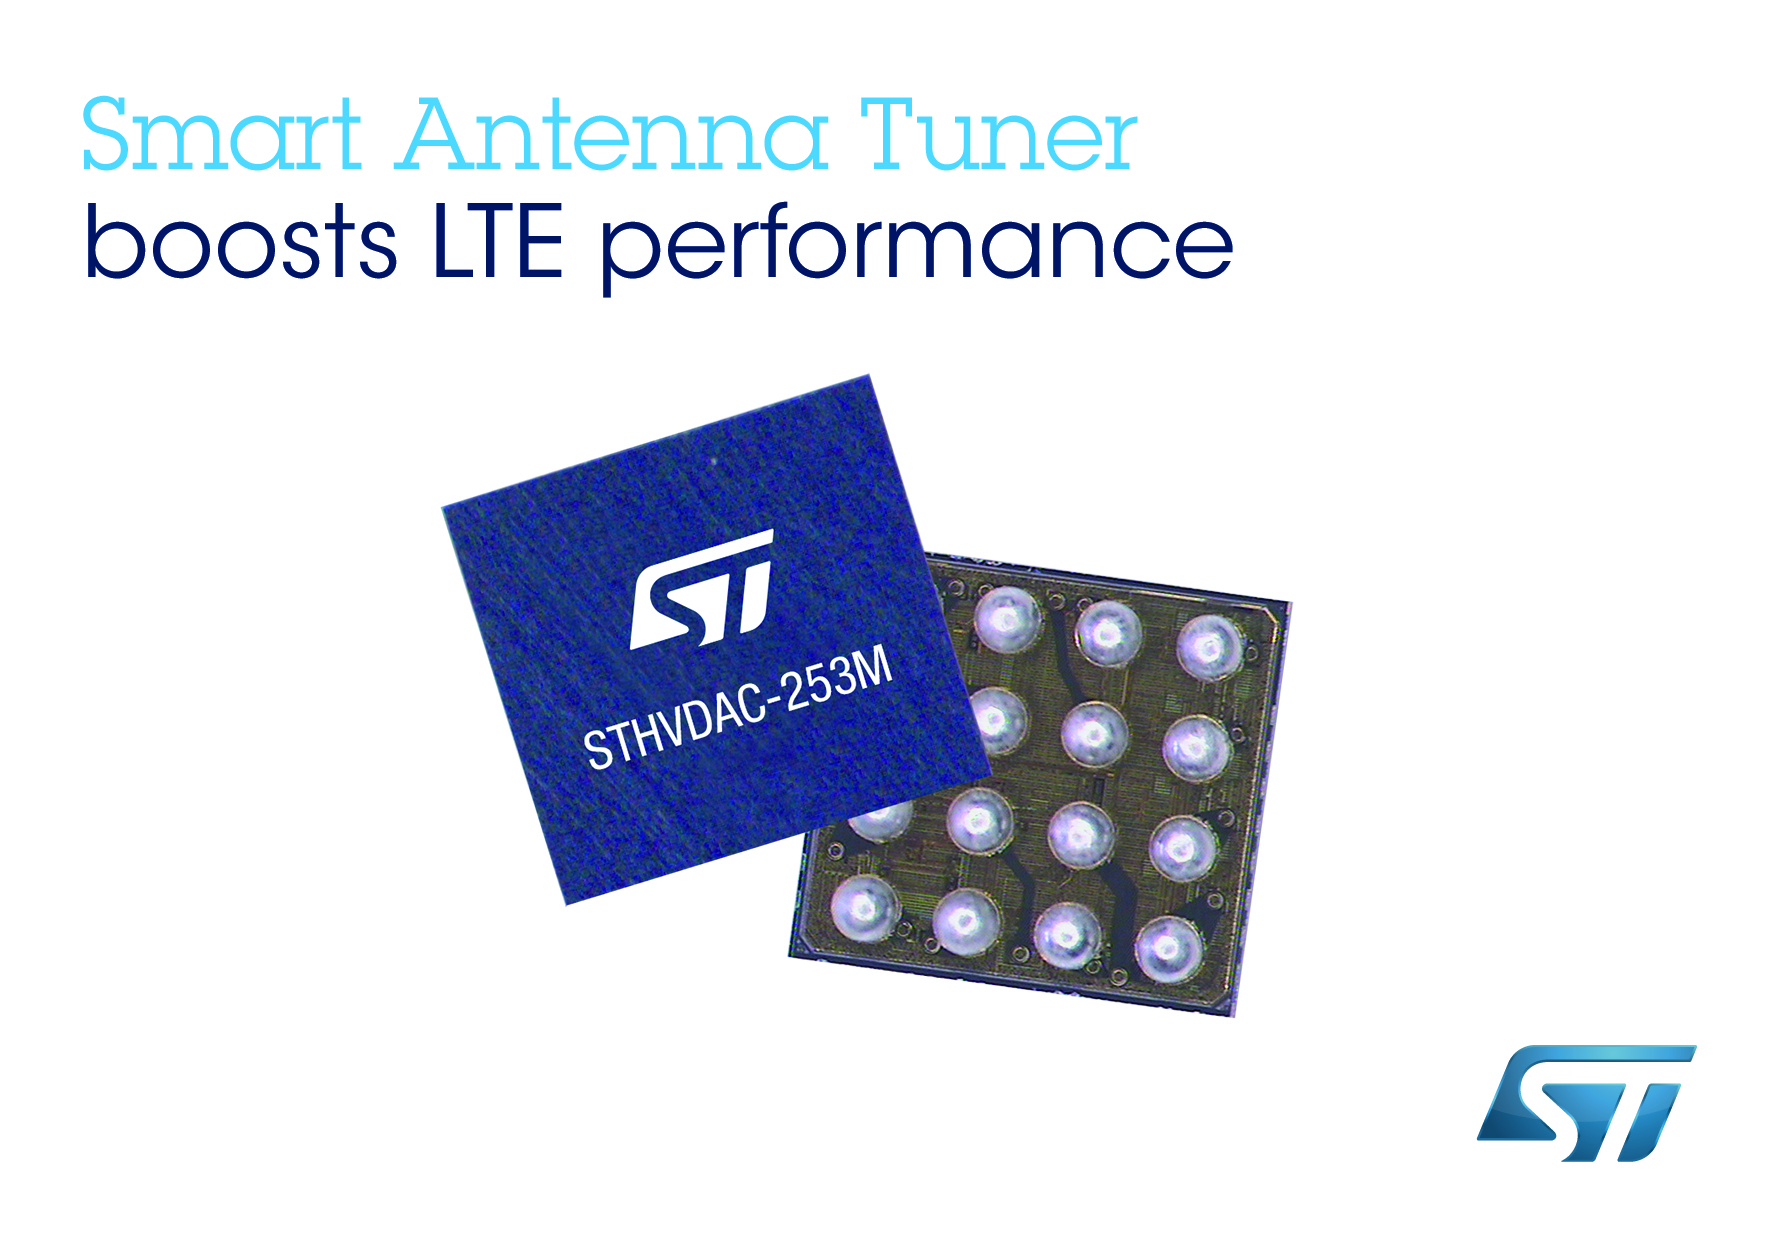 New Antenna-Tuning Circuit from STMicroelectronics Boosts LTE Smartphone Performance